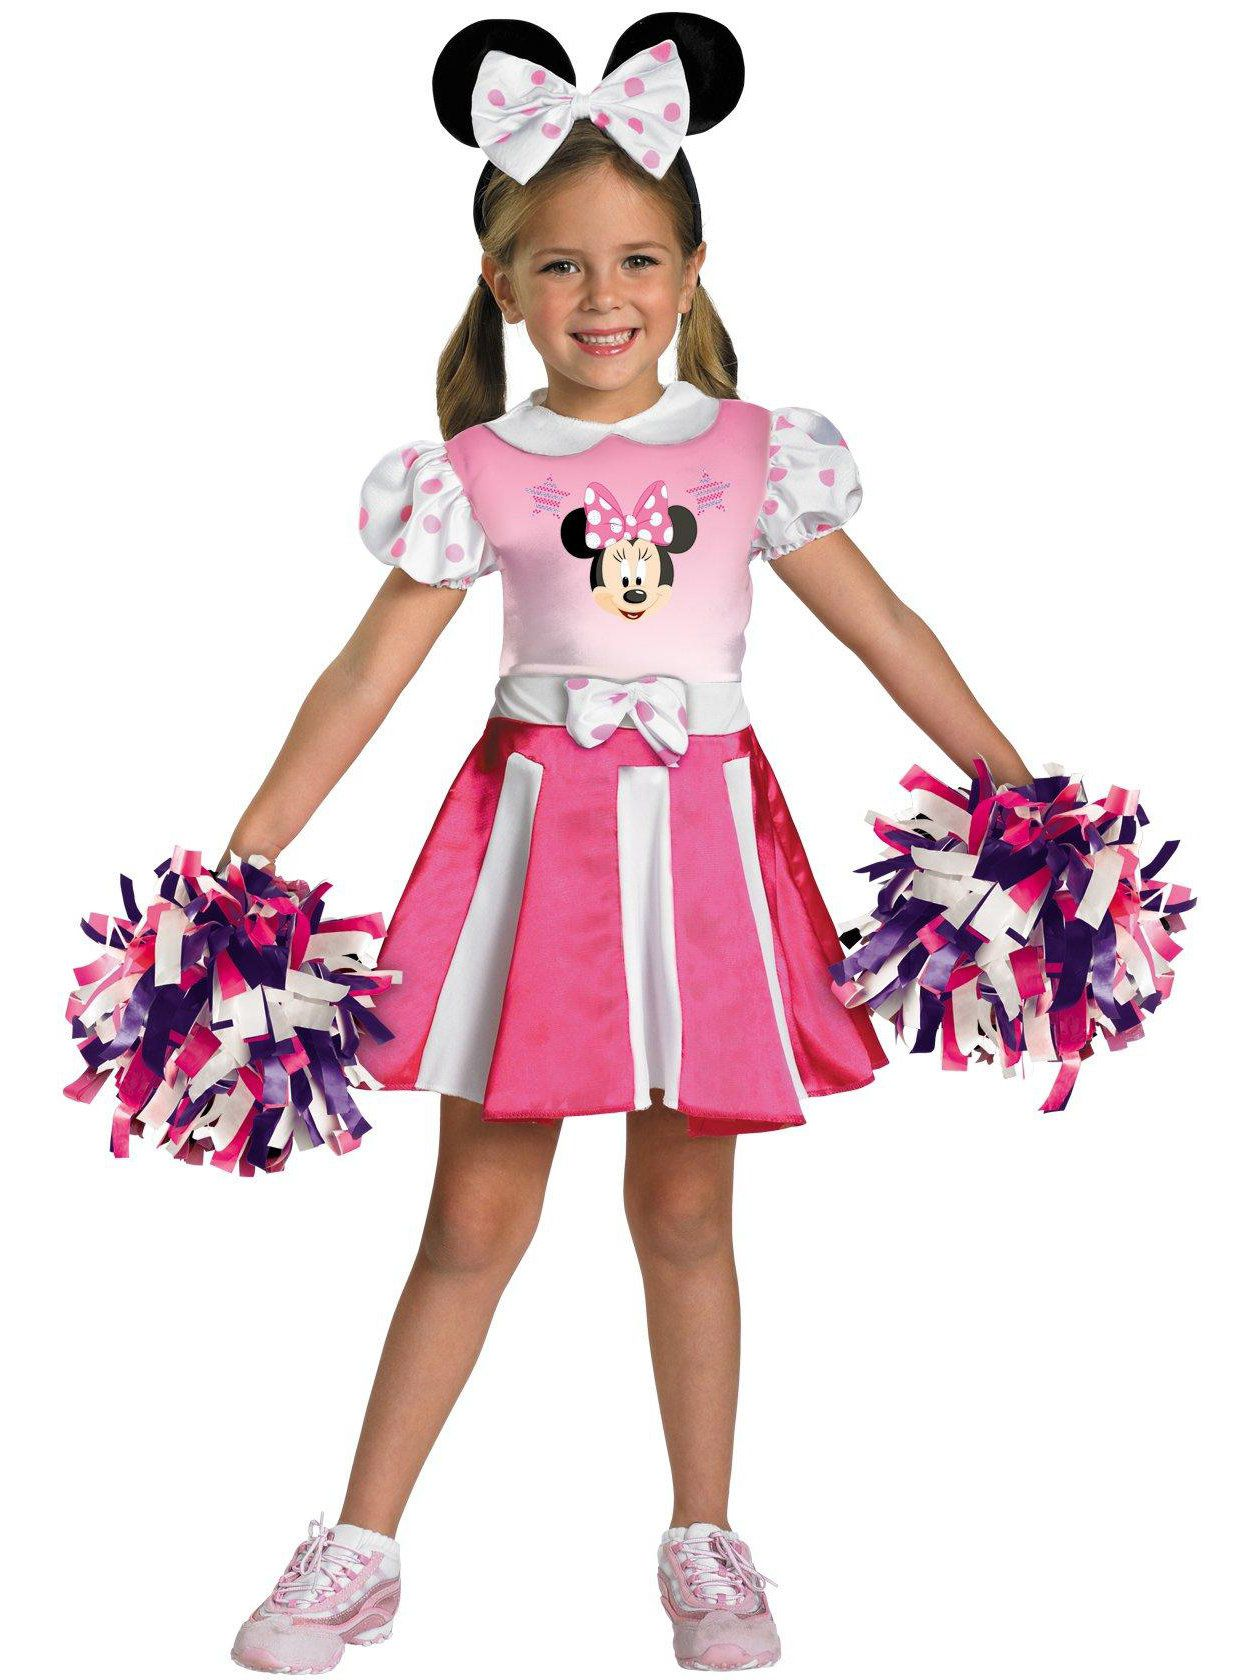 Mickey Mouse Clubhouse - Minnie Mouse Cheerleader Toddler / Child Costume - Baby Halloween Costumes   BuyCostumes.com  sc 1 st  BuyCostumes.com & Mickey Mouse Clubhouse - Minnie Mouse Cheerleader Toddler / Child ...